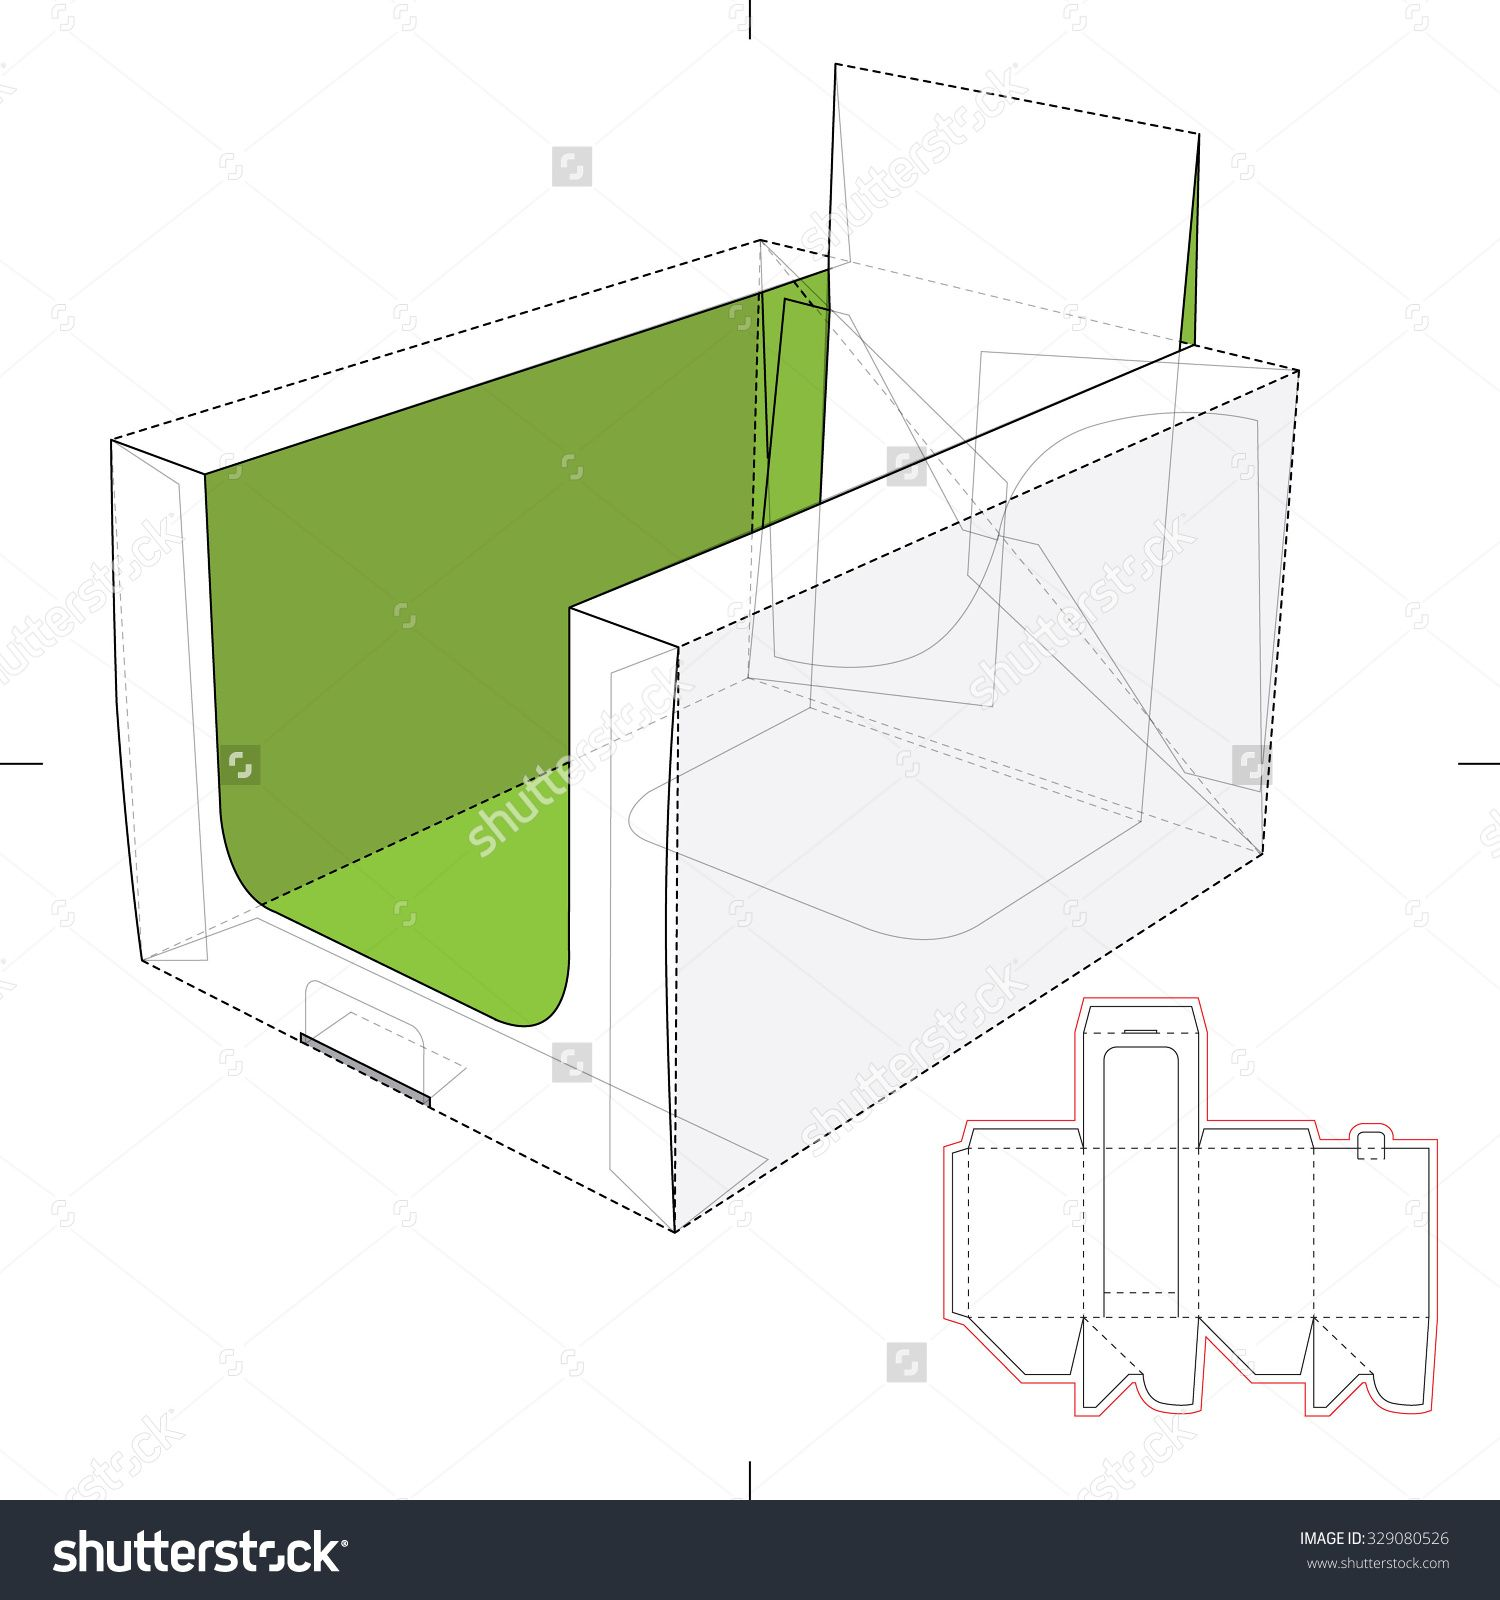 Product Display Box With Blueprint Layout Stock Vector